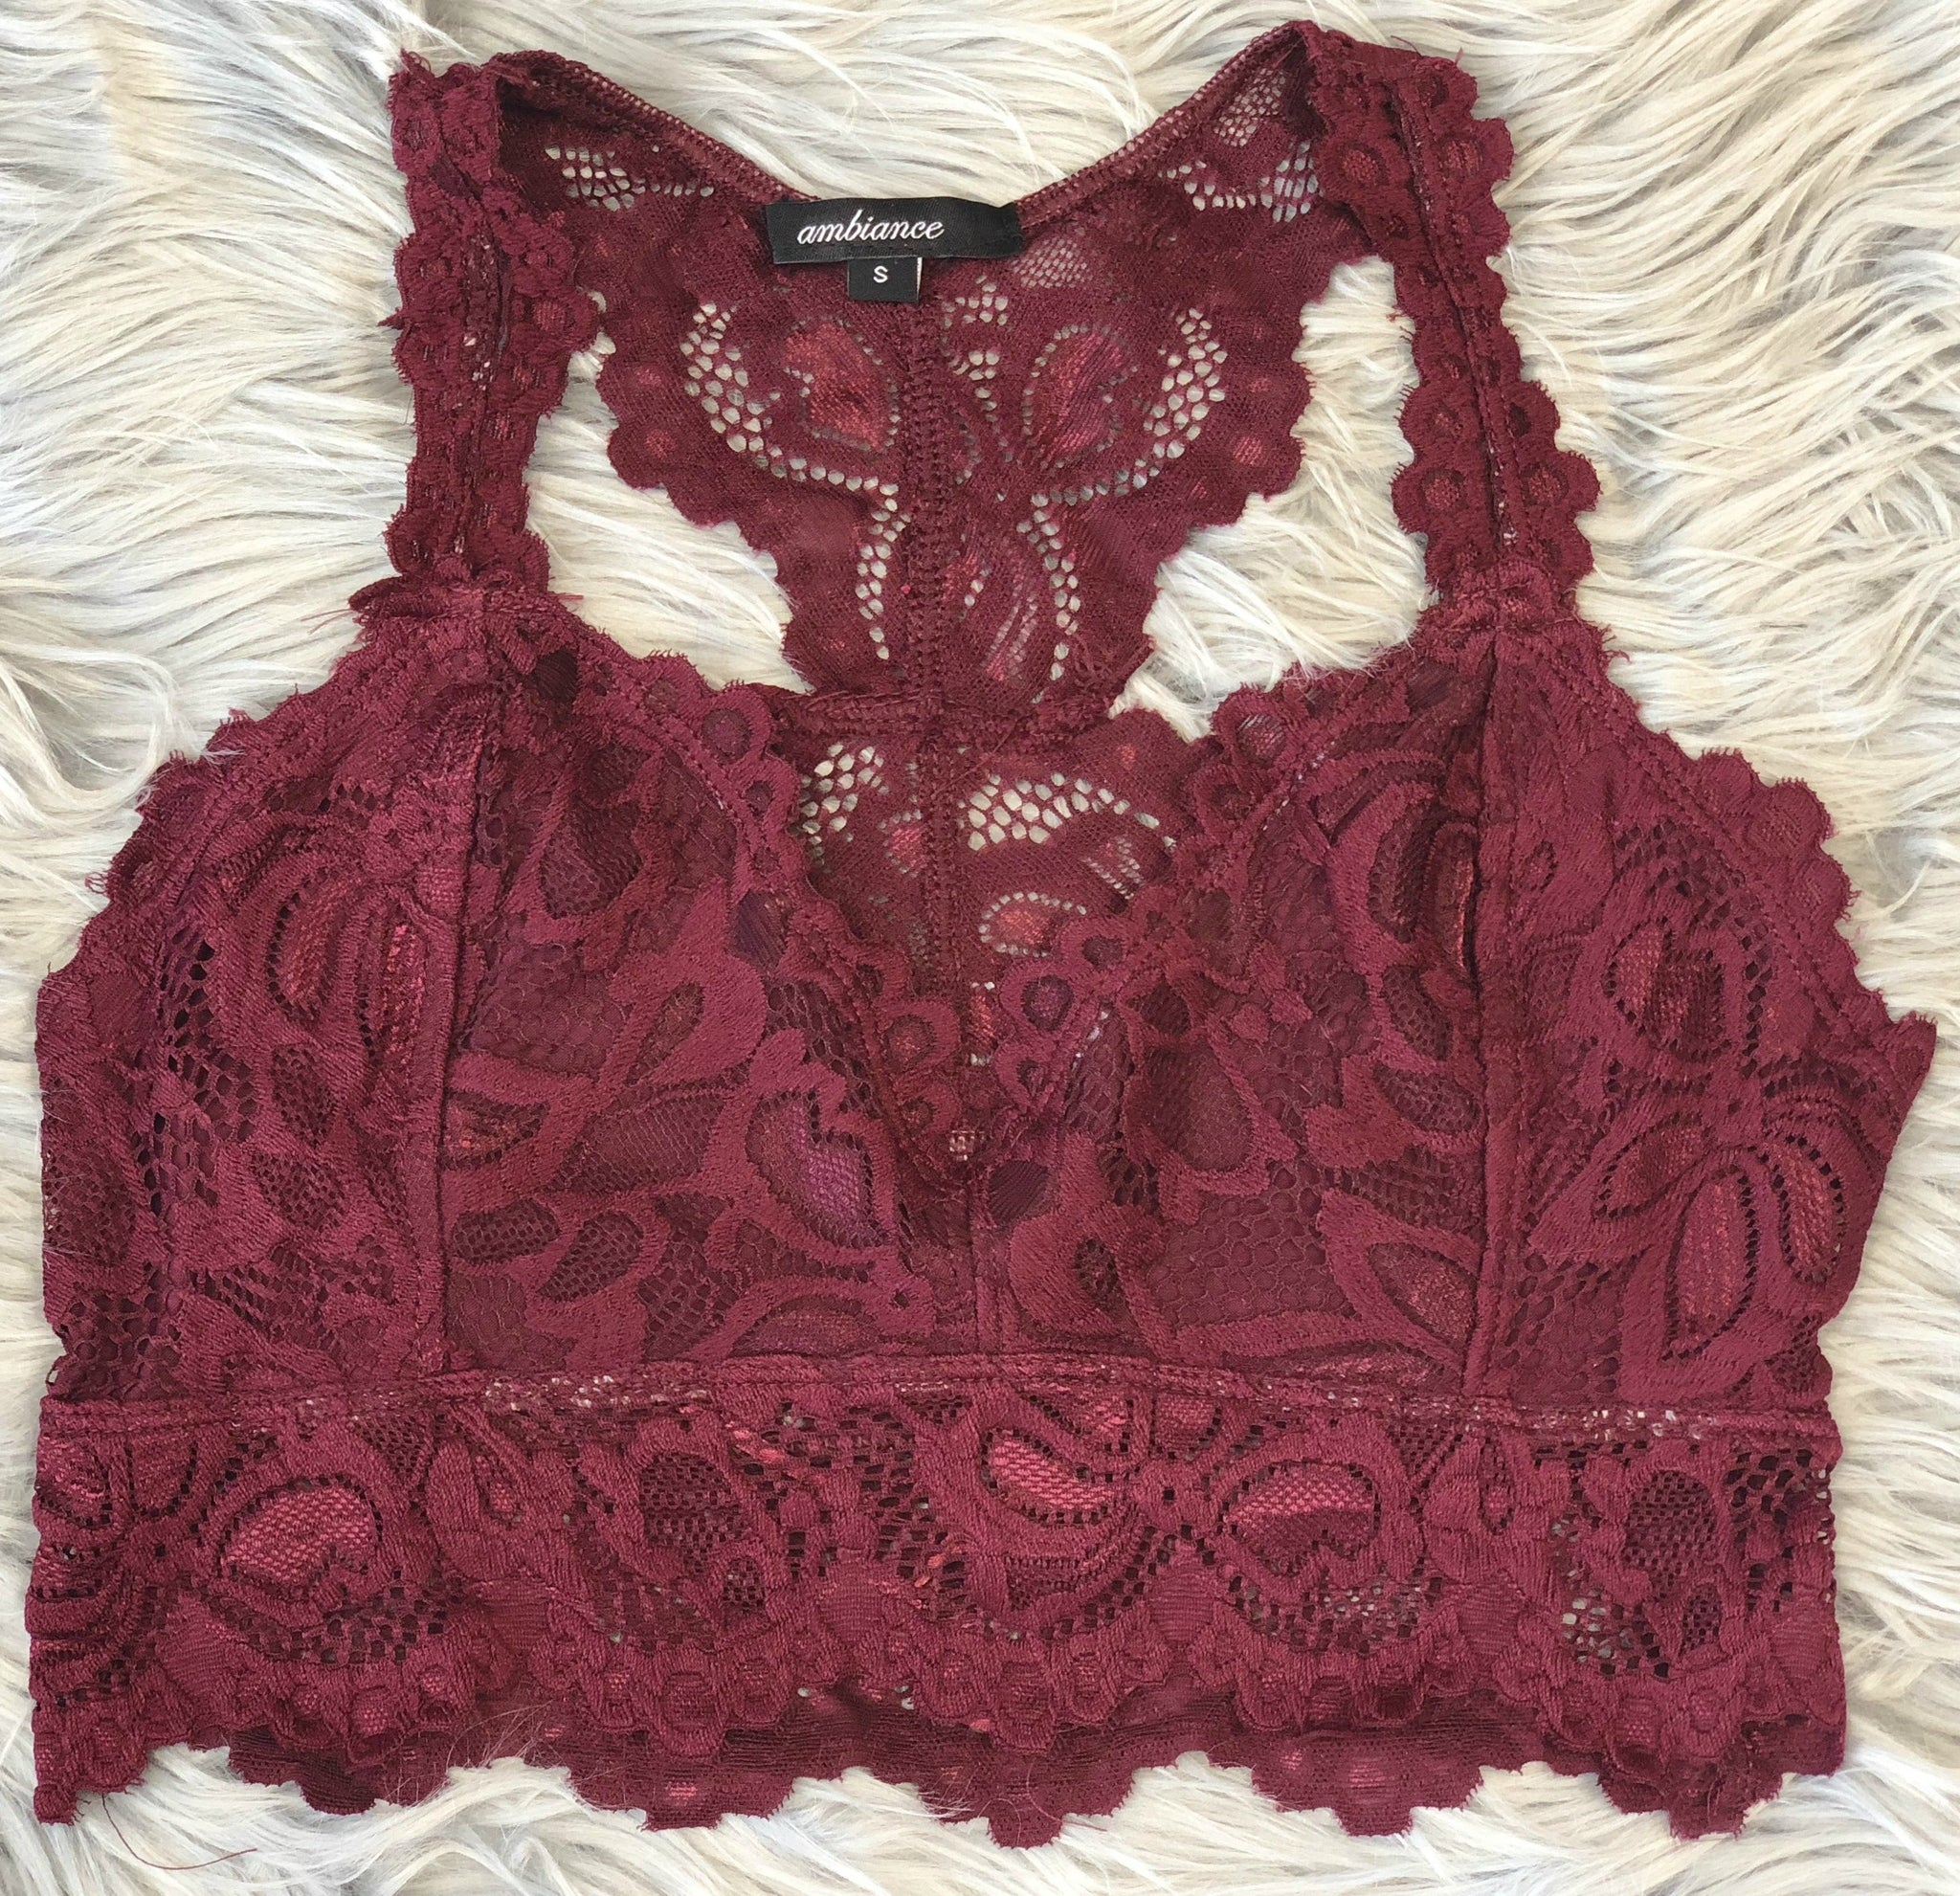 Bare it All Lace Racerback Bralette: Burgundy